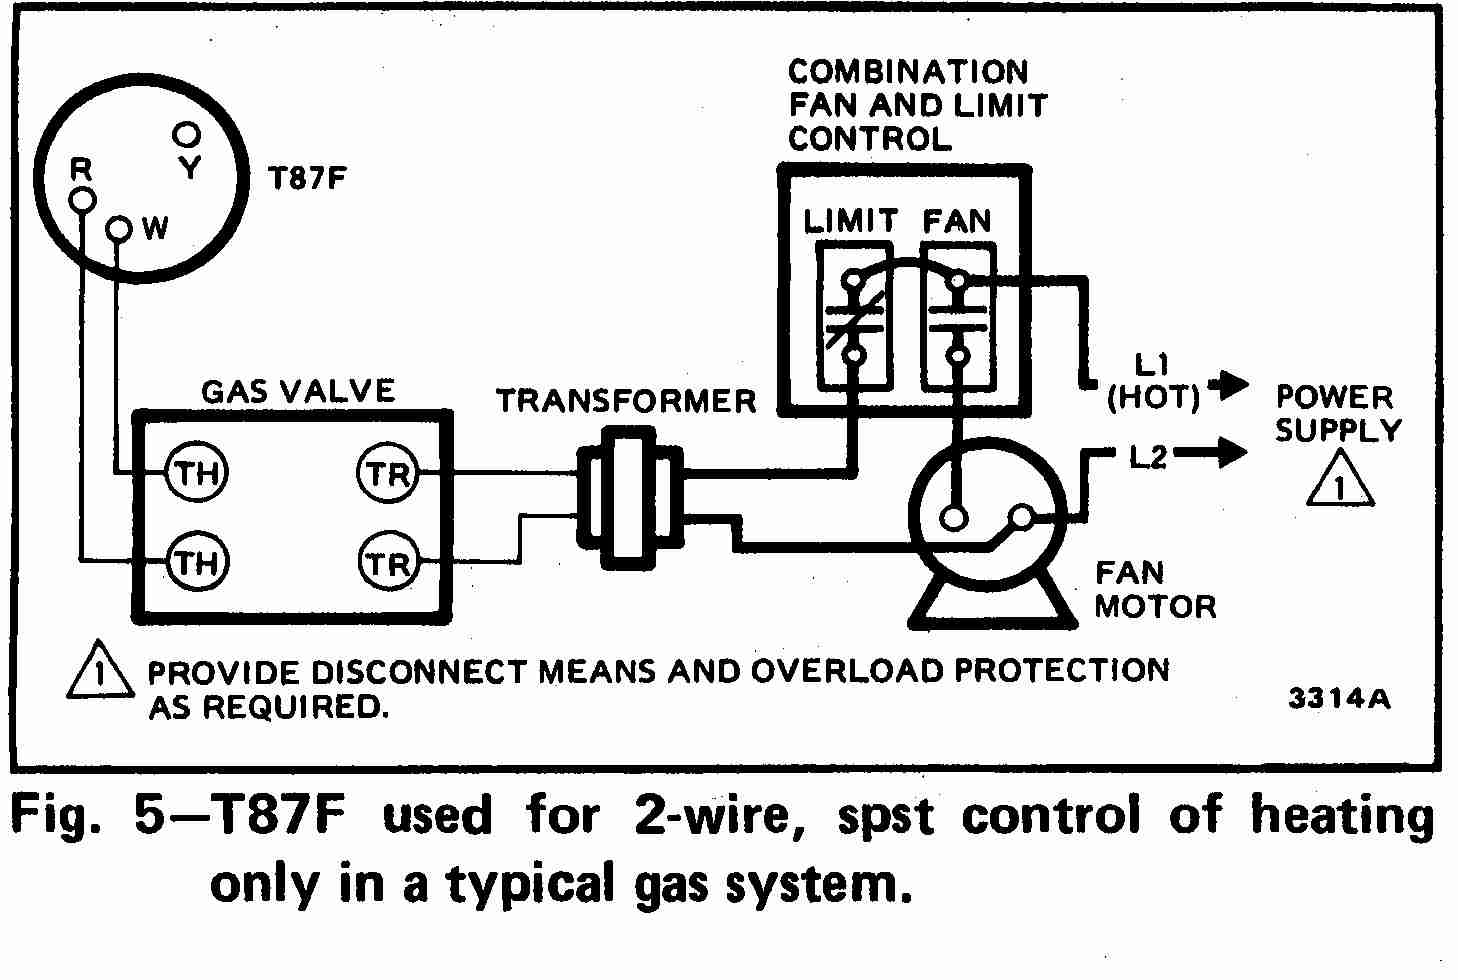 TT_T87F_0002_2Wg_DJF guide to wiring connections for room thermostats 2 wire thermostat wiring diagram heat only at suagrazia.org